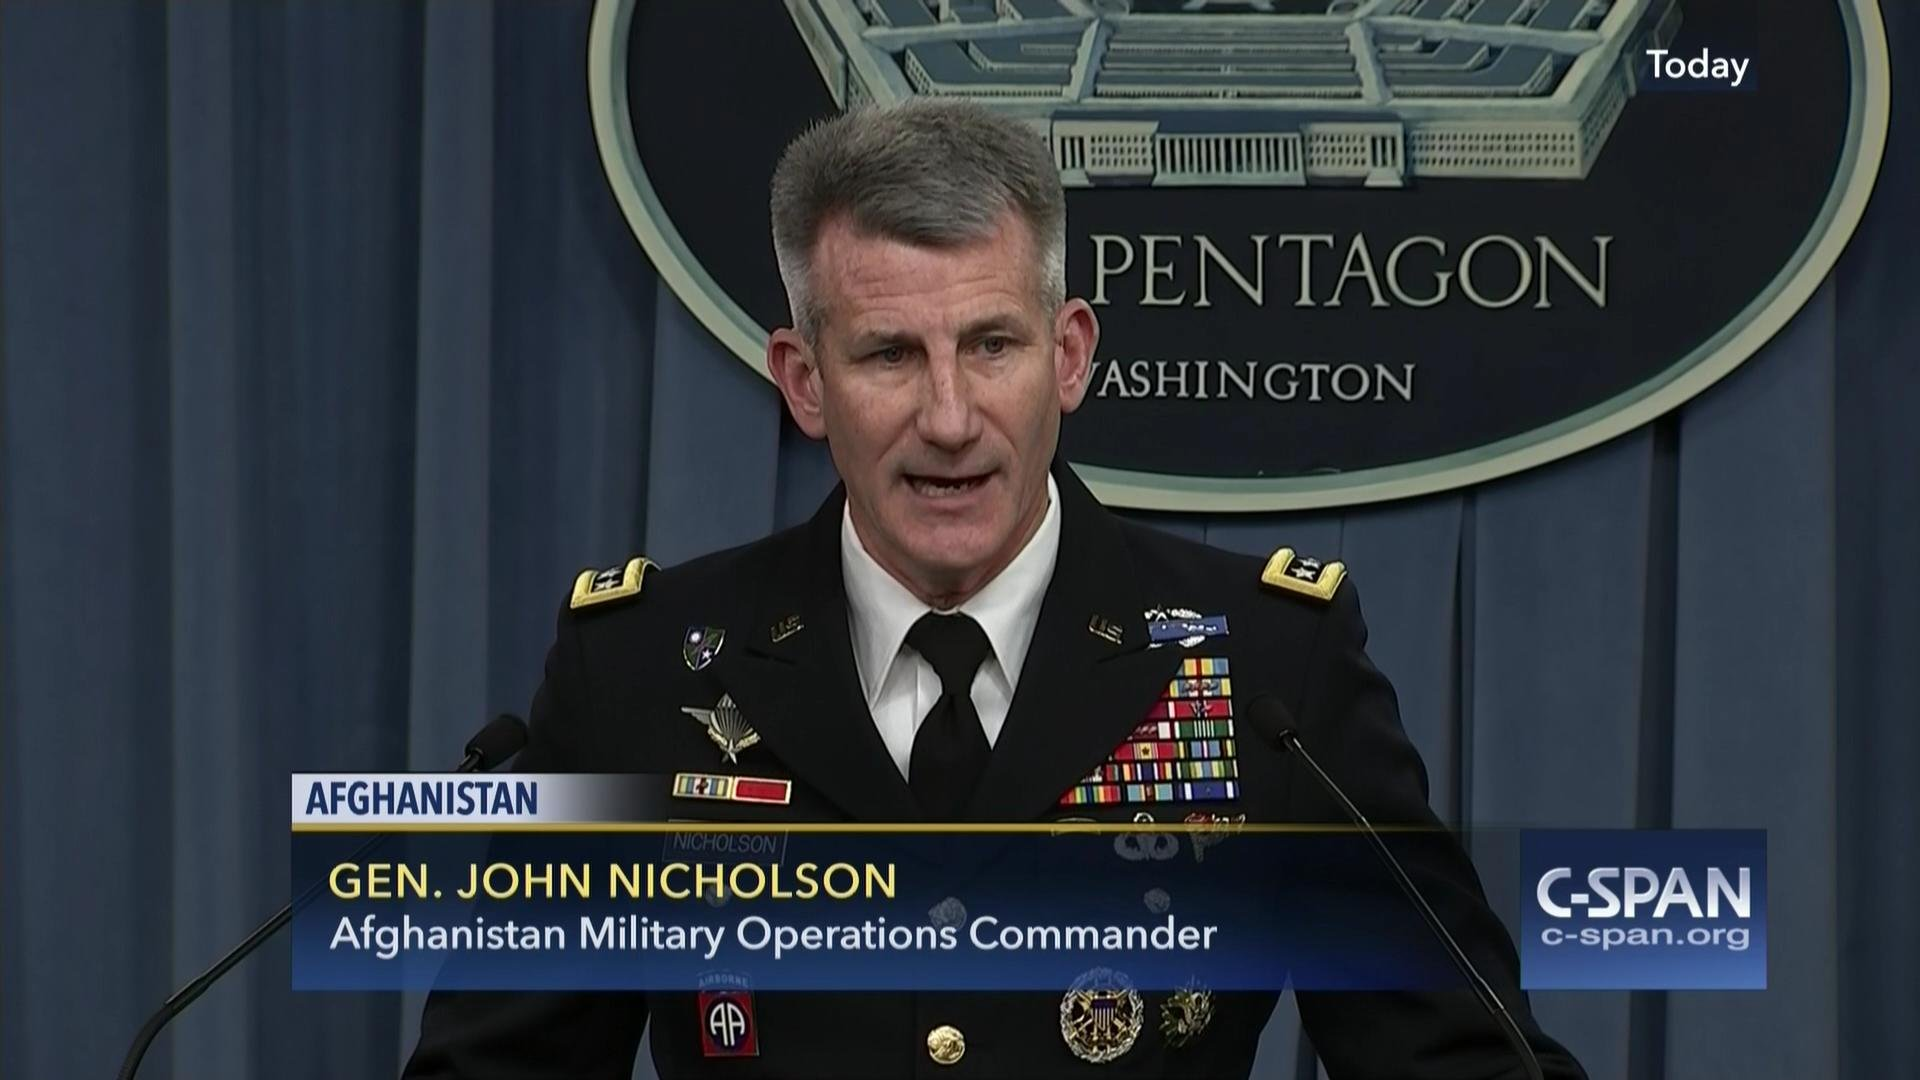 Gen. John Nicholson. courtesy of C-Span.